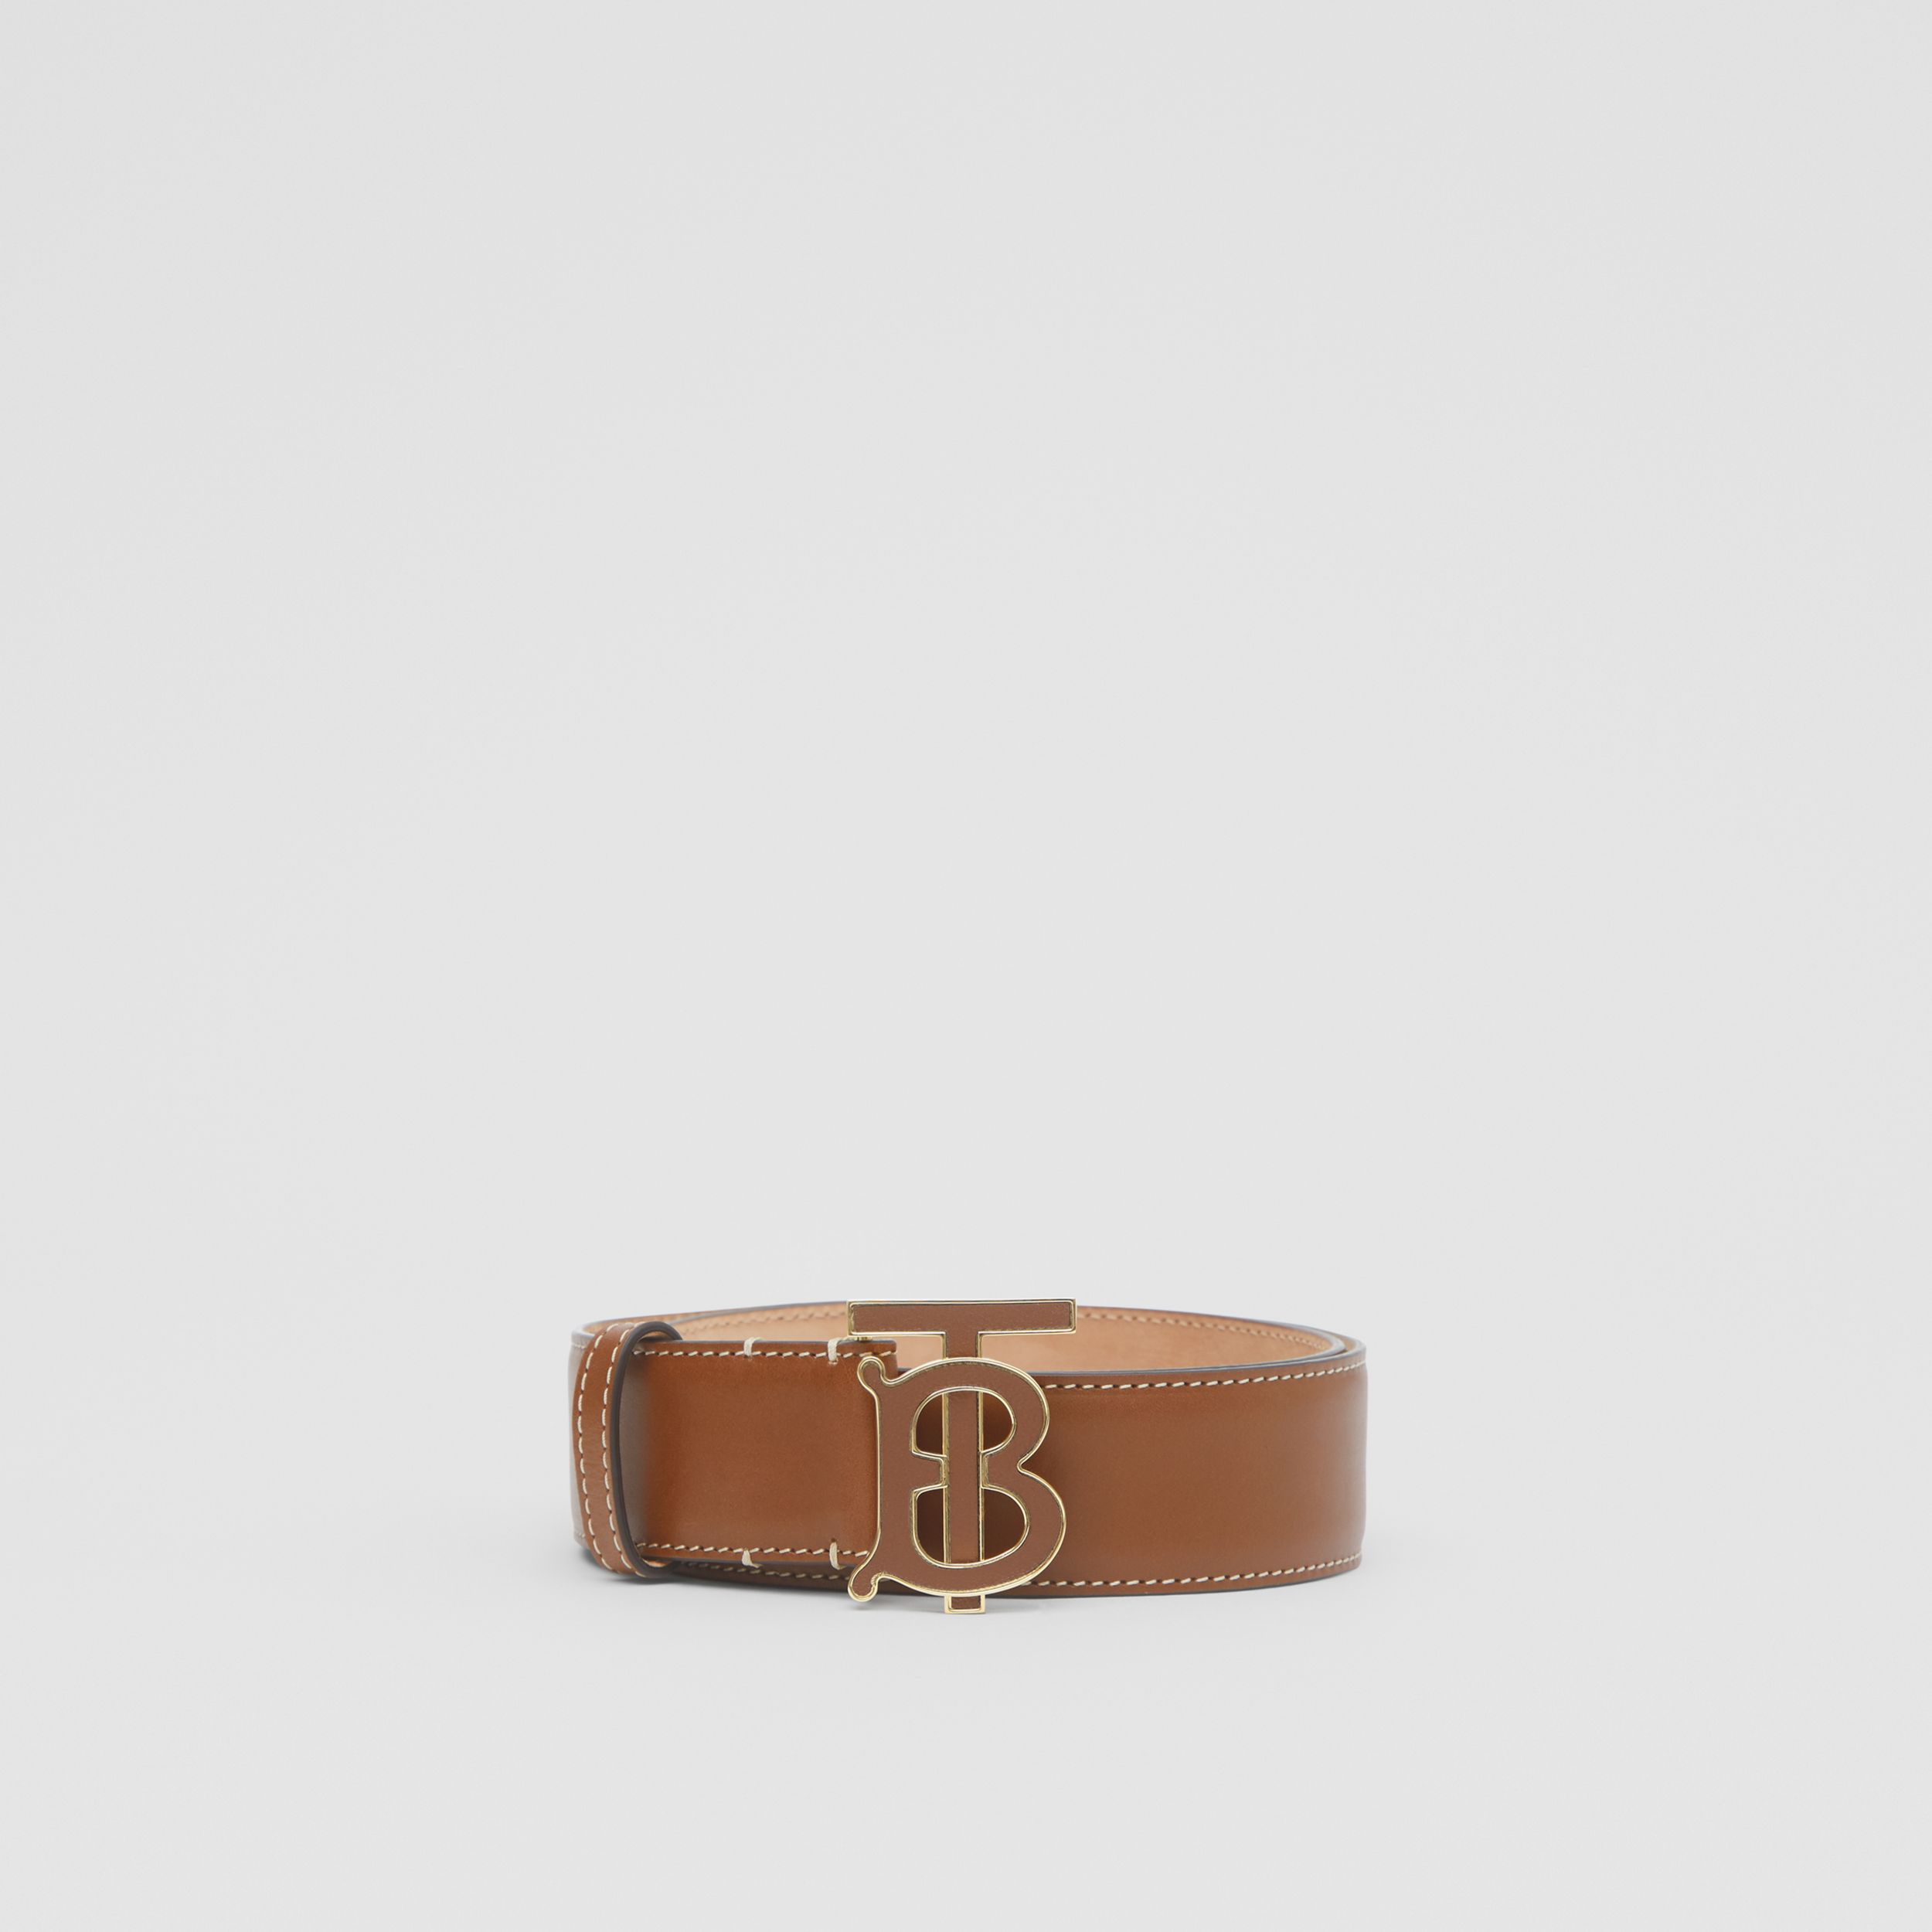 Monogram Motif Leather Belt in Tan - Women | Burberry Hong Kong S.A.R. - 4